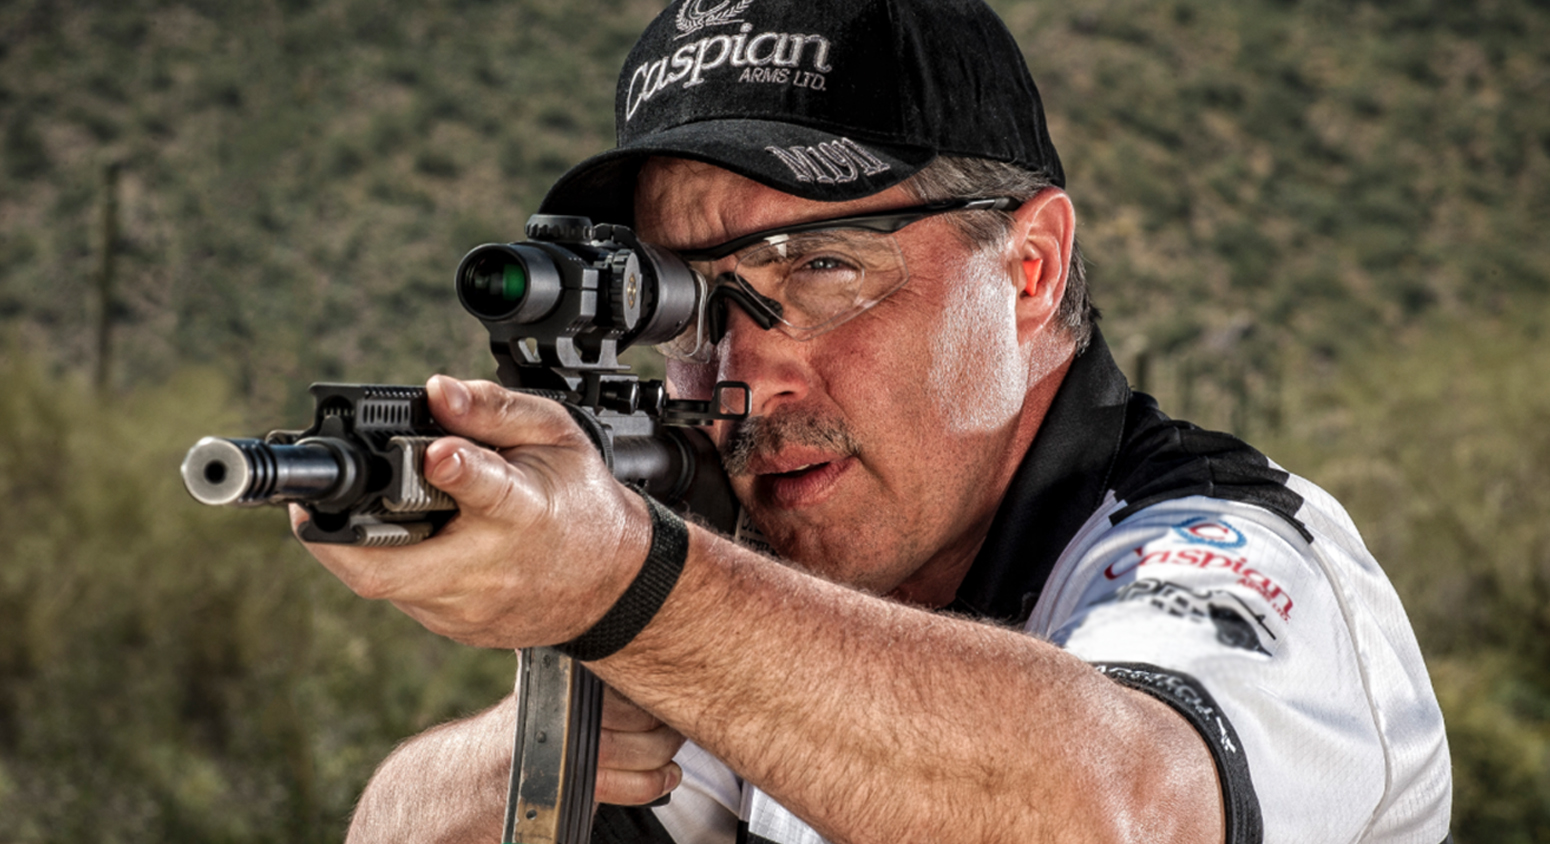 Tips to succeed from NRA World Shooting Championship veterans